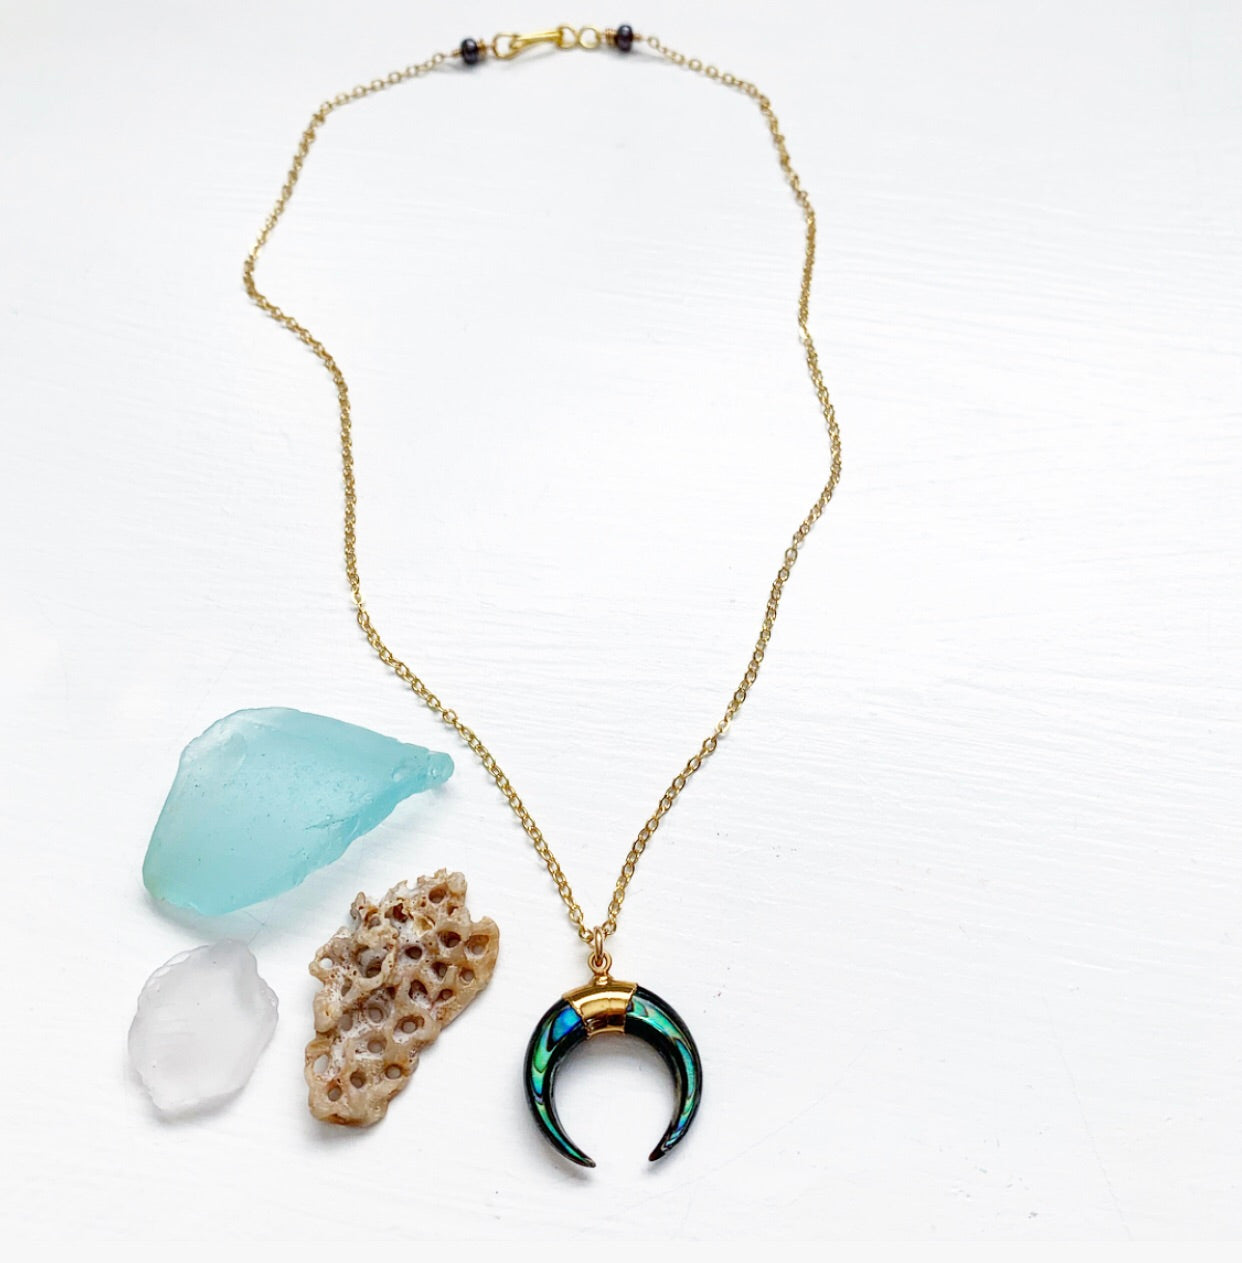 682-Medium Abalone Crescent Necklace